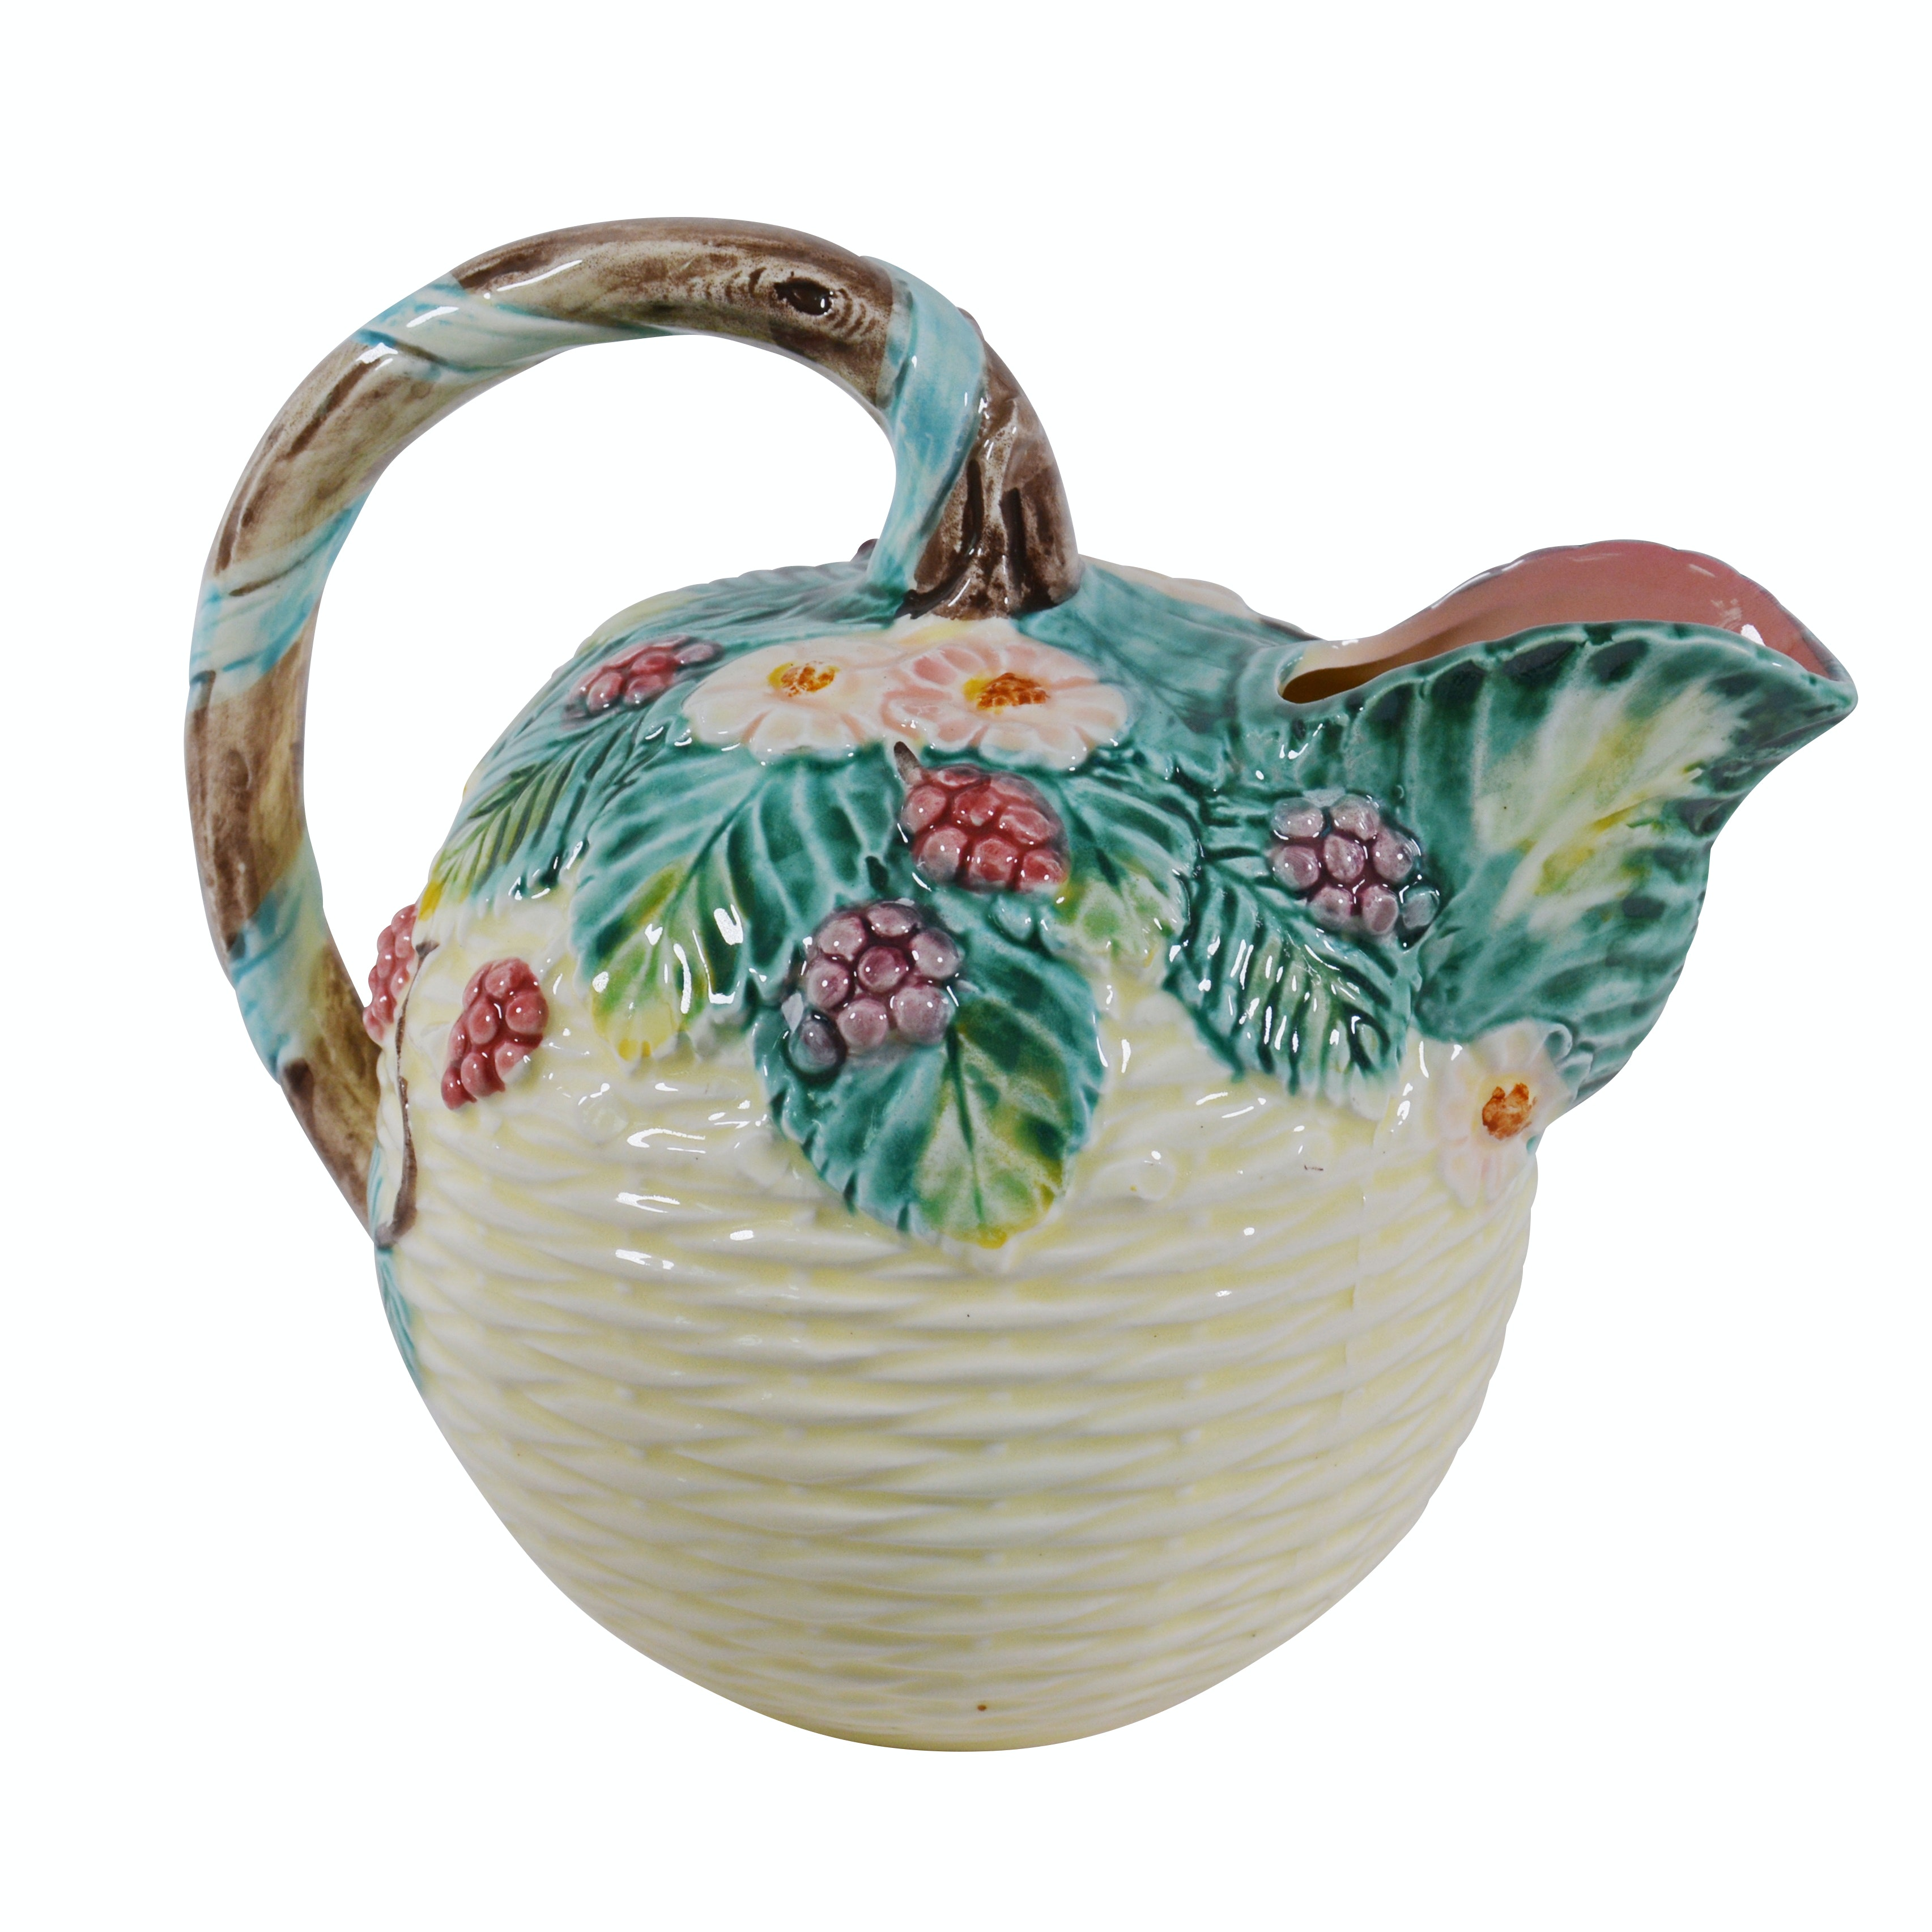 The Haldon Group Ceramic Berry Basket Pitcher, Vintage